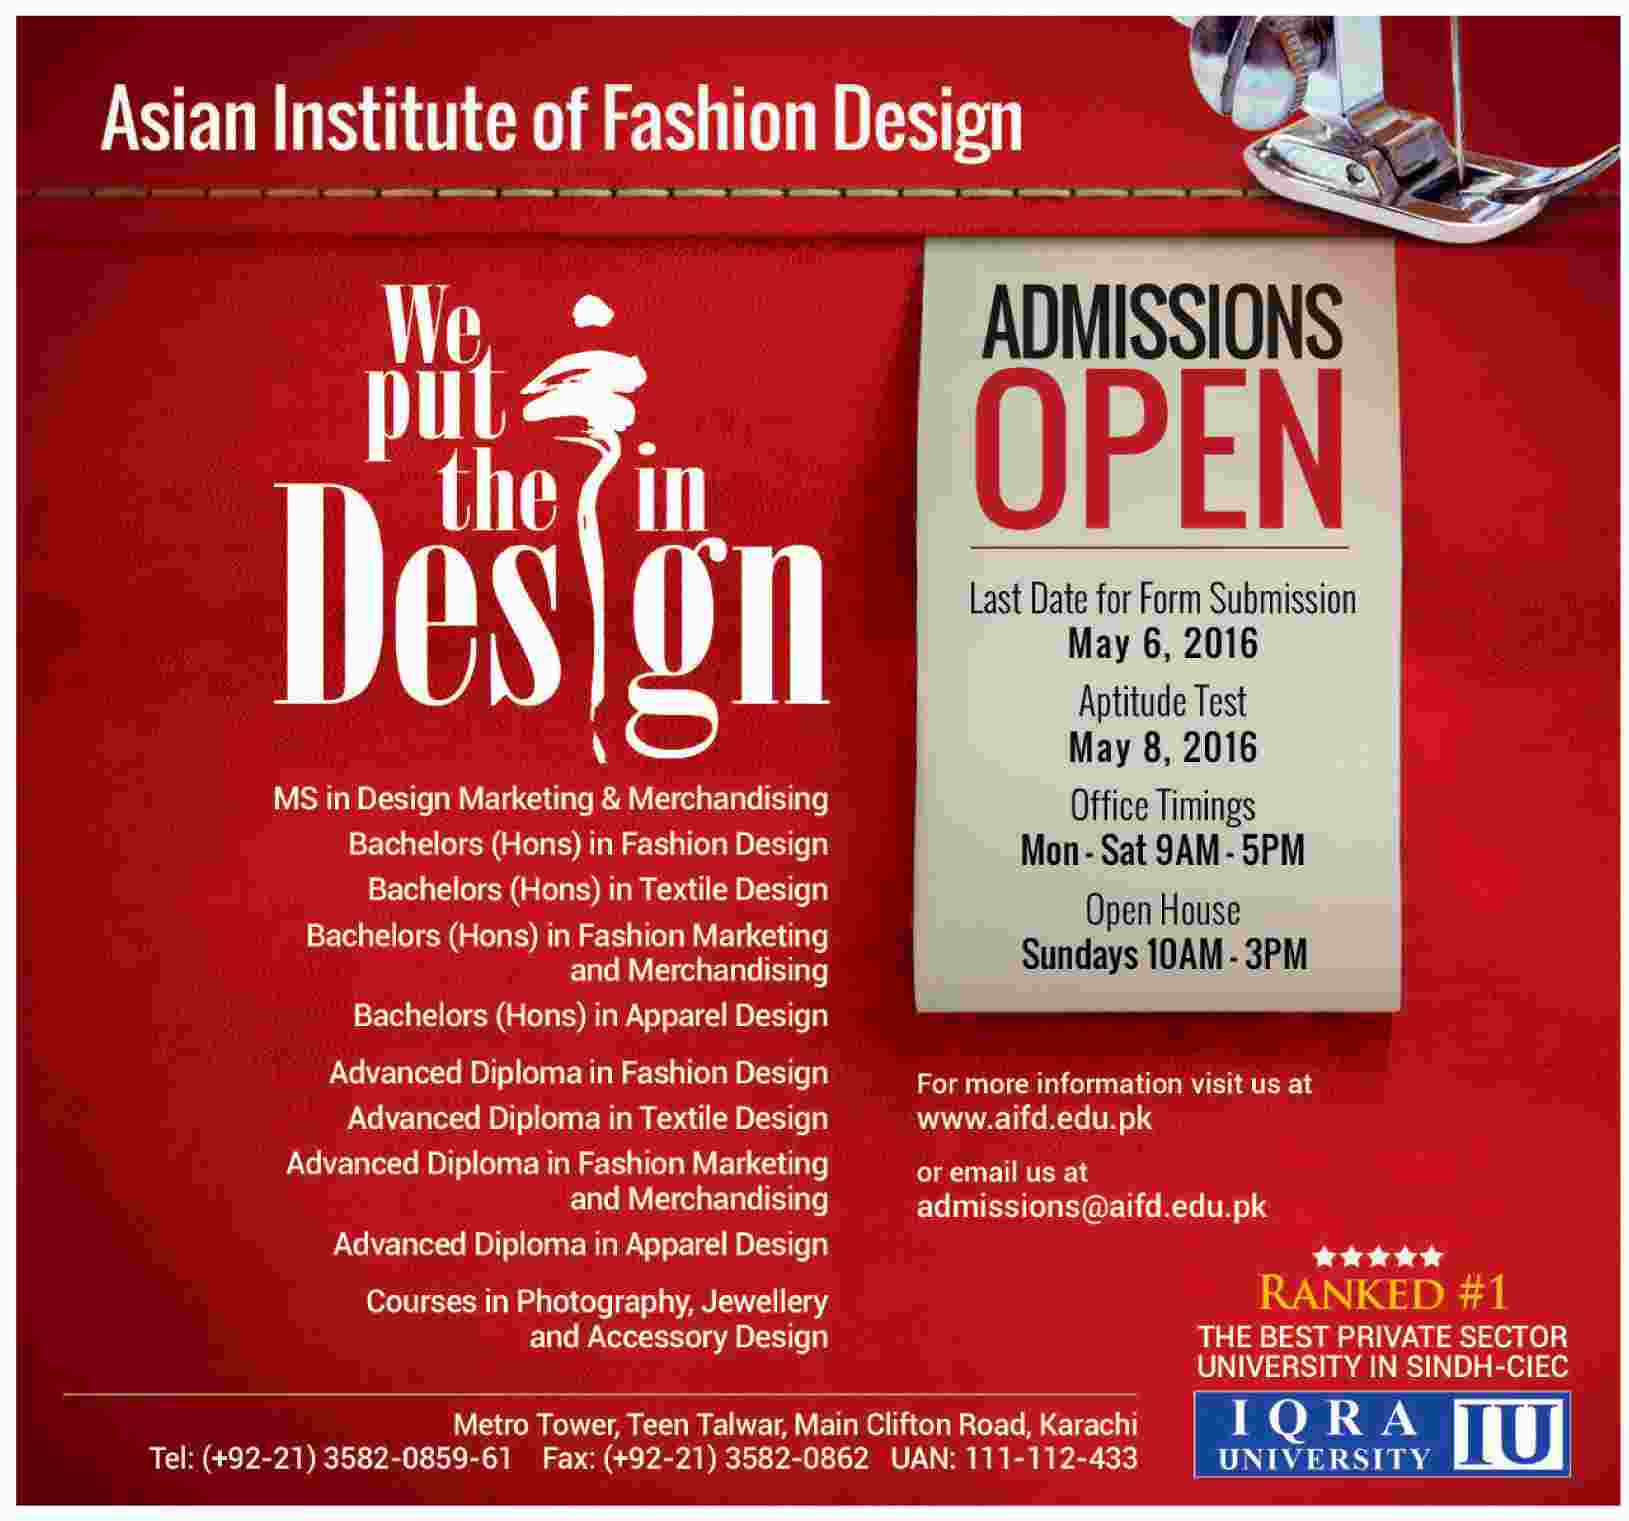 AIFD Karachi Admission 2016 Online Form Asian Institute Of Fashion Design